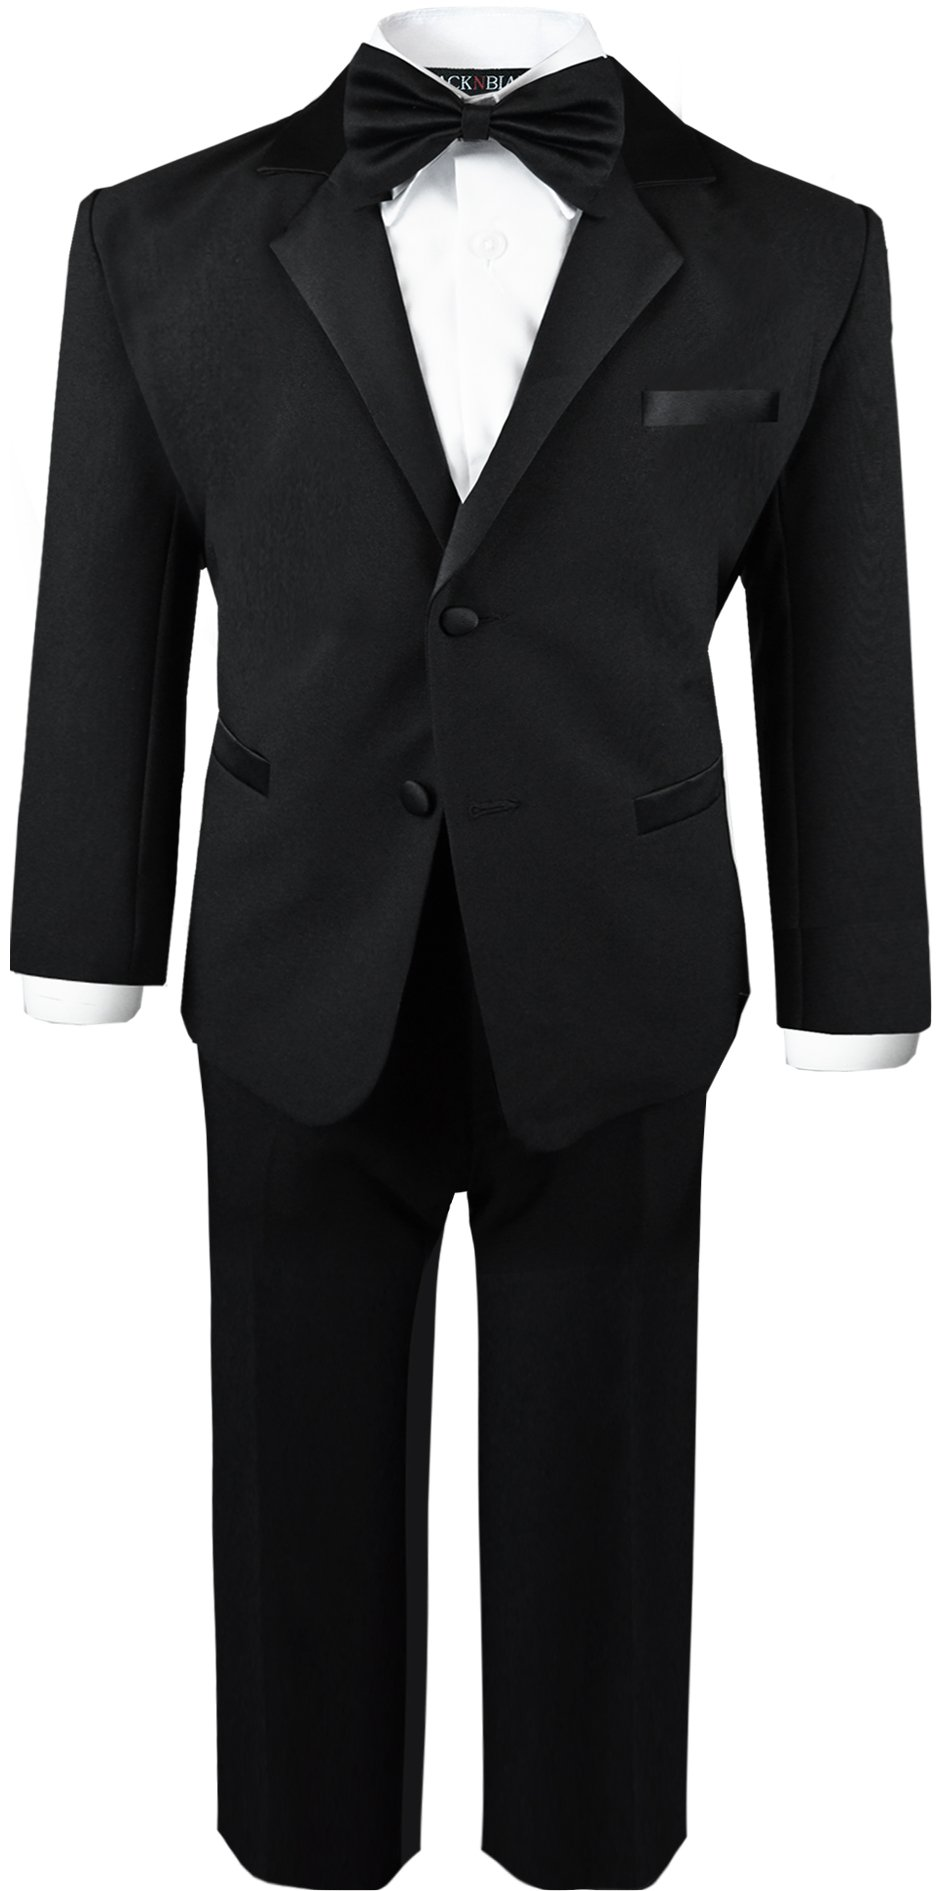 Boys Infant and Toddlers Black Tuxedo Size X-Large by Black n Bianco